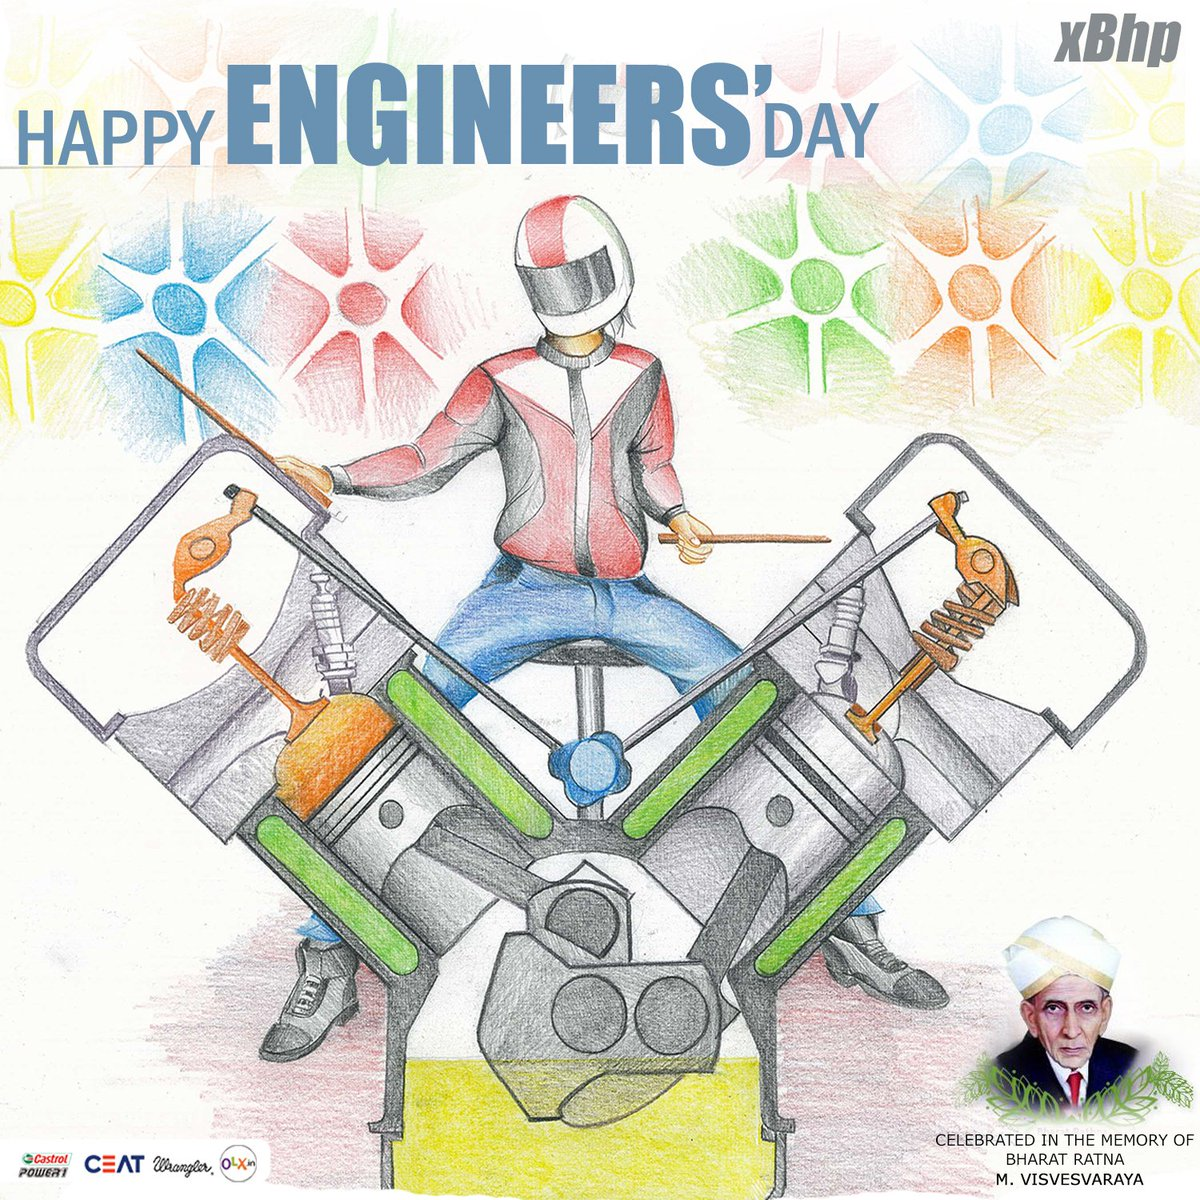 You guys make our dreams come true! You guys are awesome! Happy Engineers' Day to all the engineers here! https://t.co/qeNz7Mi7dA